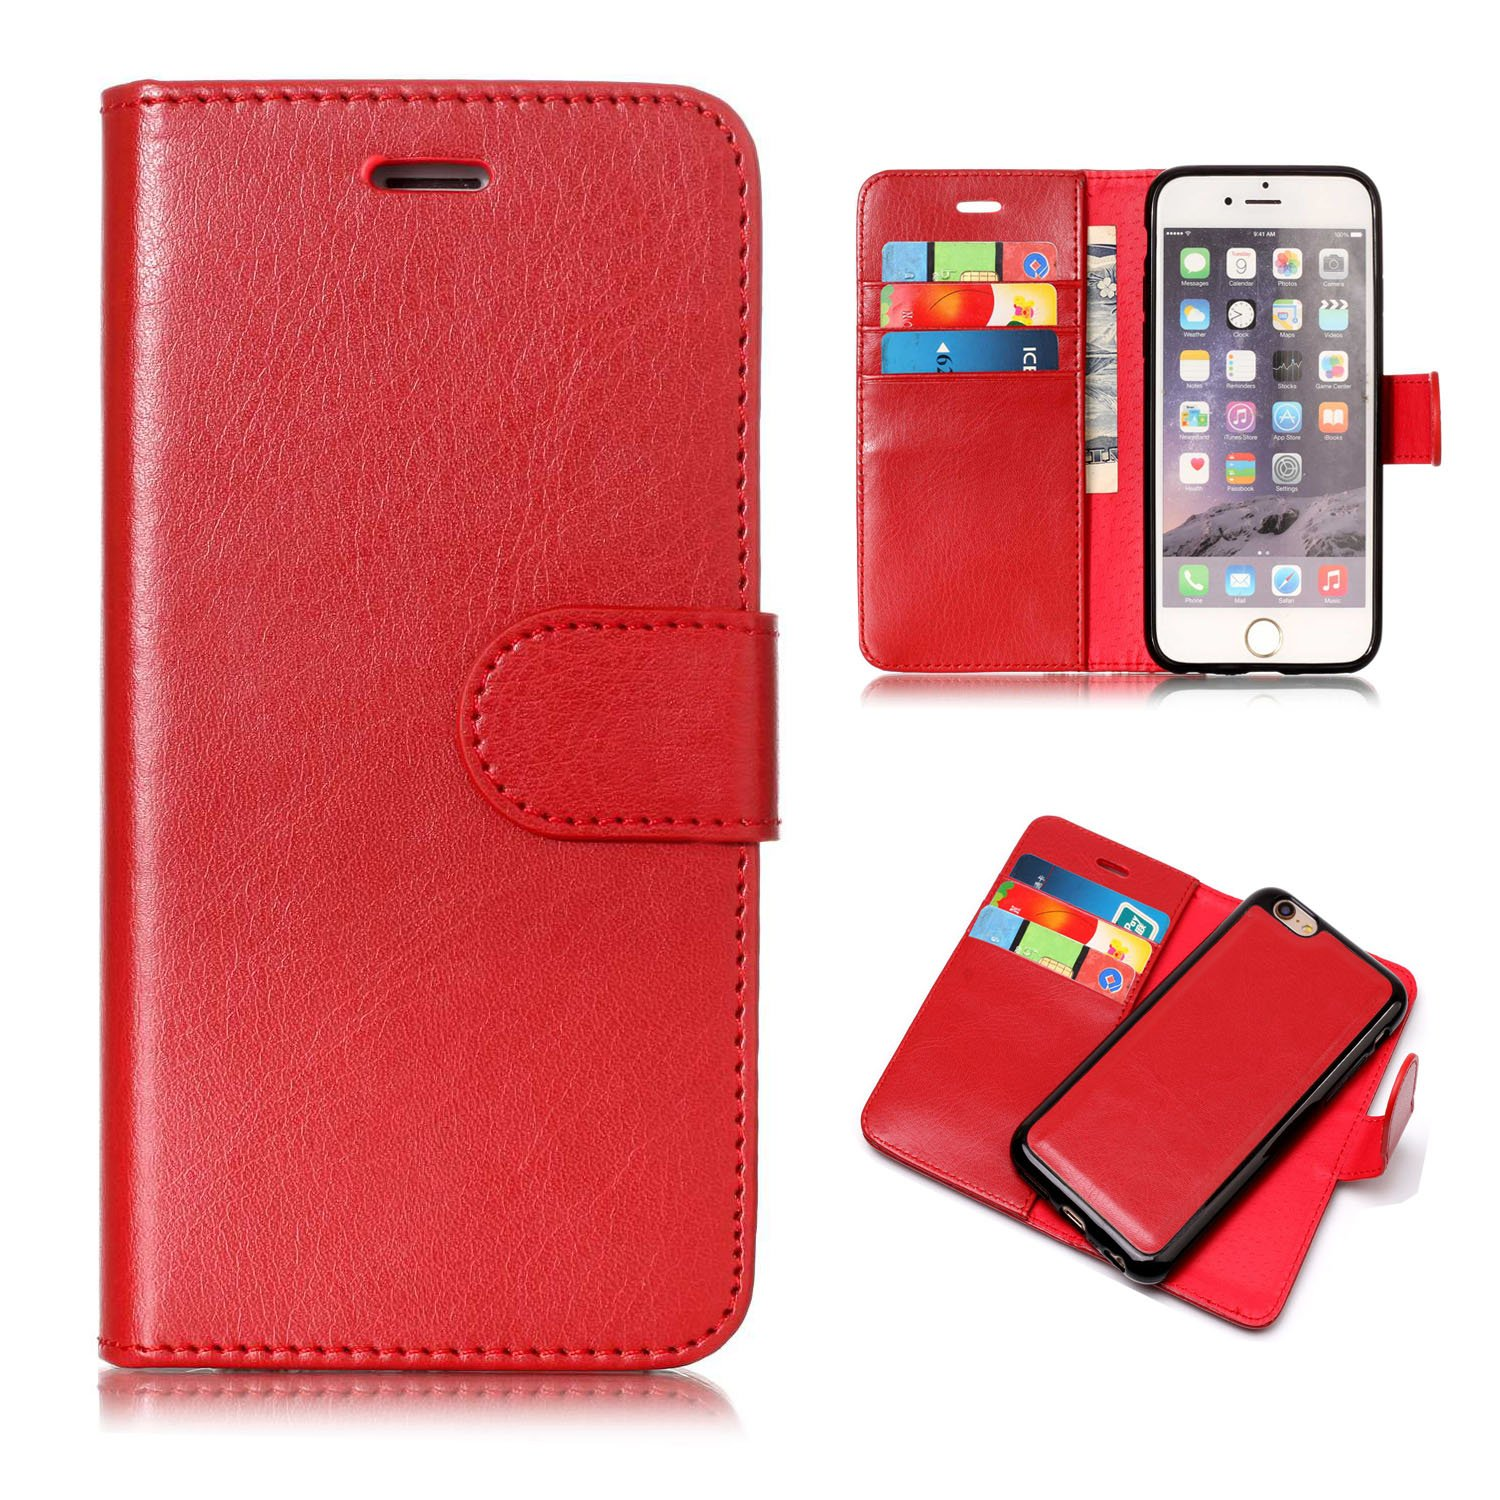 new concept 9f418 a9250 Amazon.com: iPhone 6s Case, iPhone 6 Case, UZER 2 in 1 Detachable ...